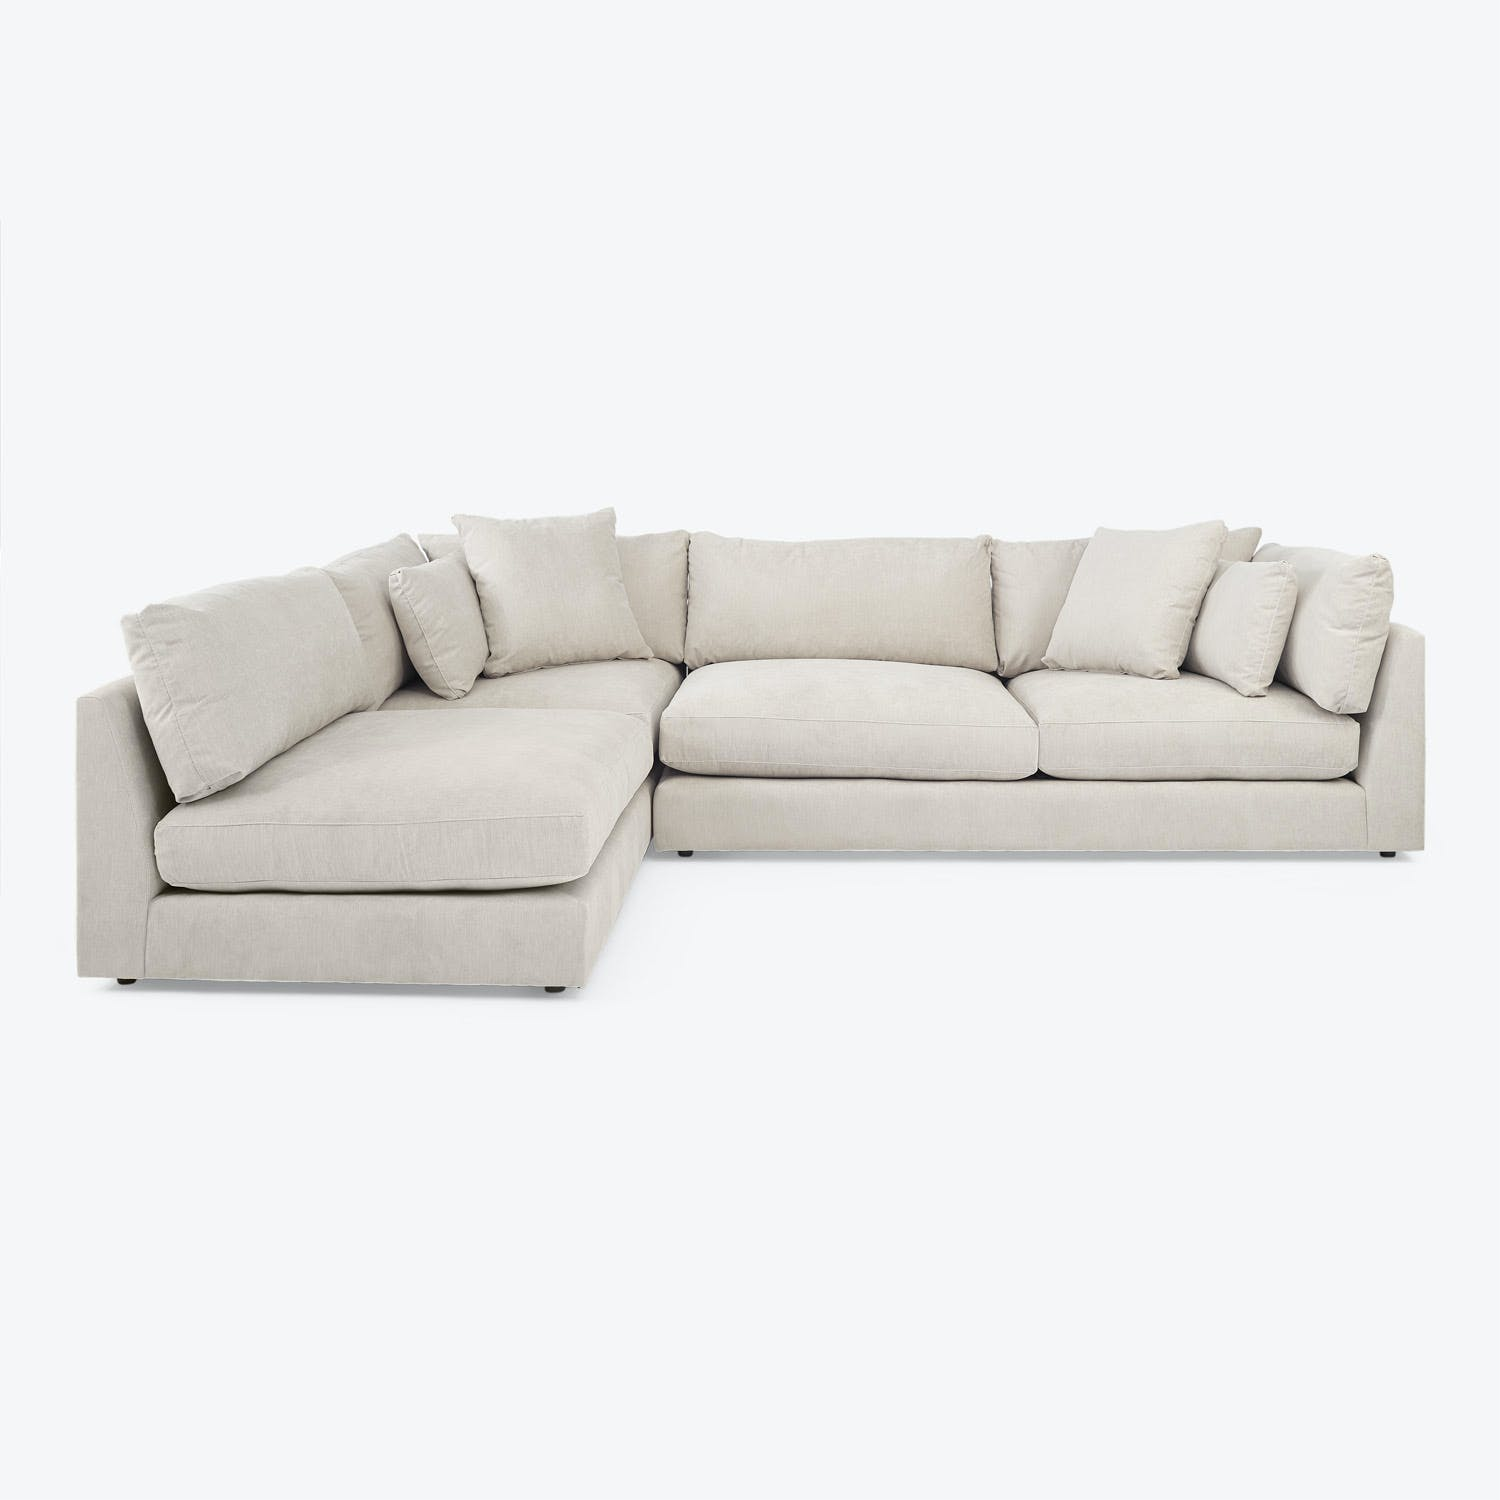 Cobble Hill Delancey Sectional Right Arm Facing